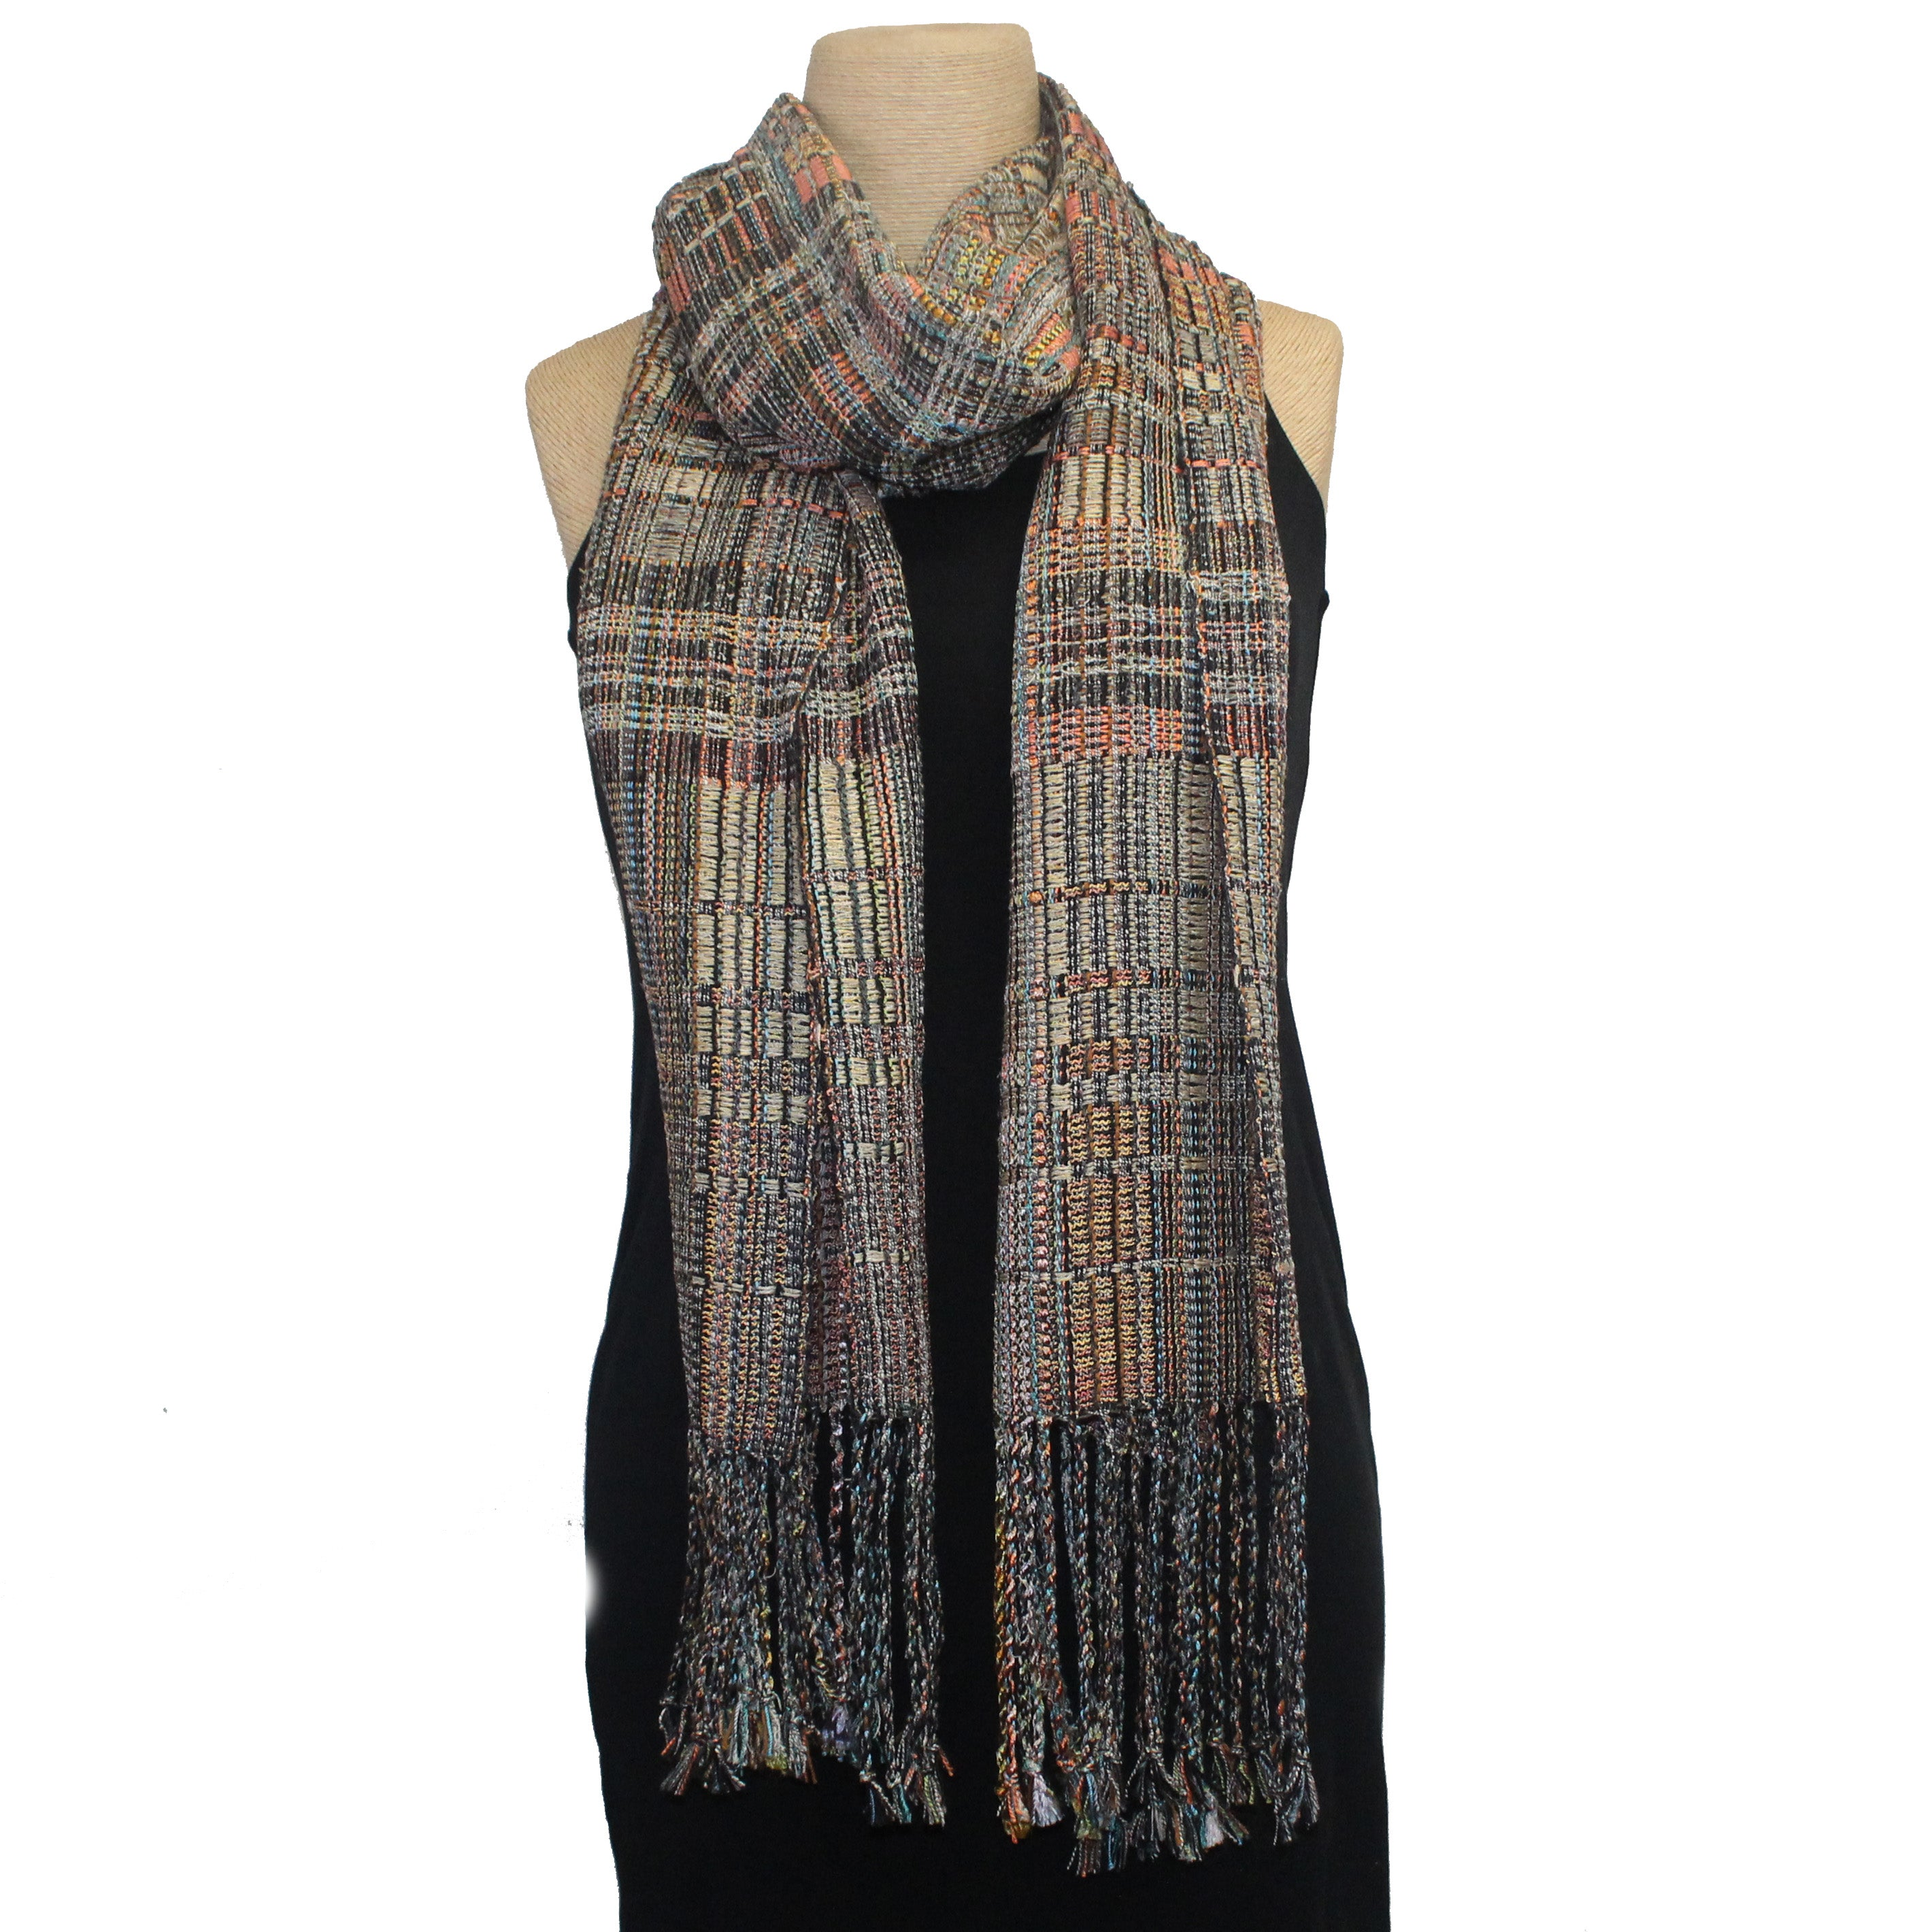 Randall Darwall Scarf, Summer & Winter, Brown/Coral